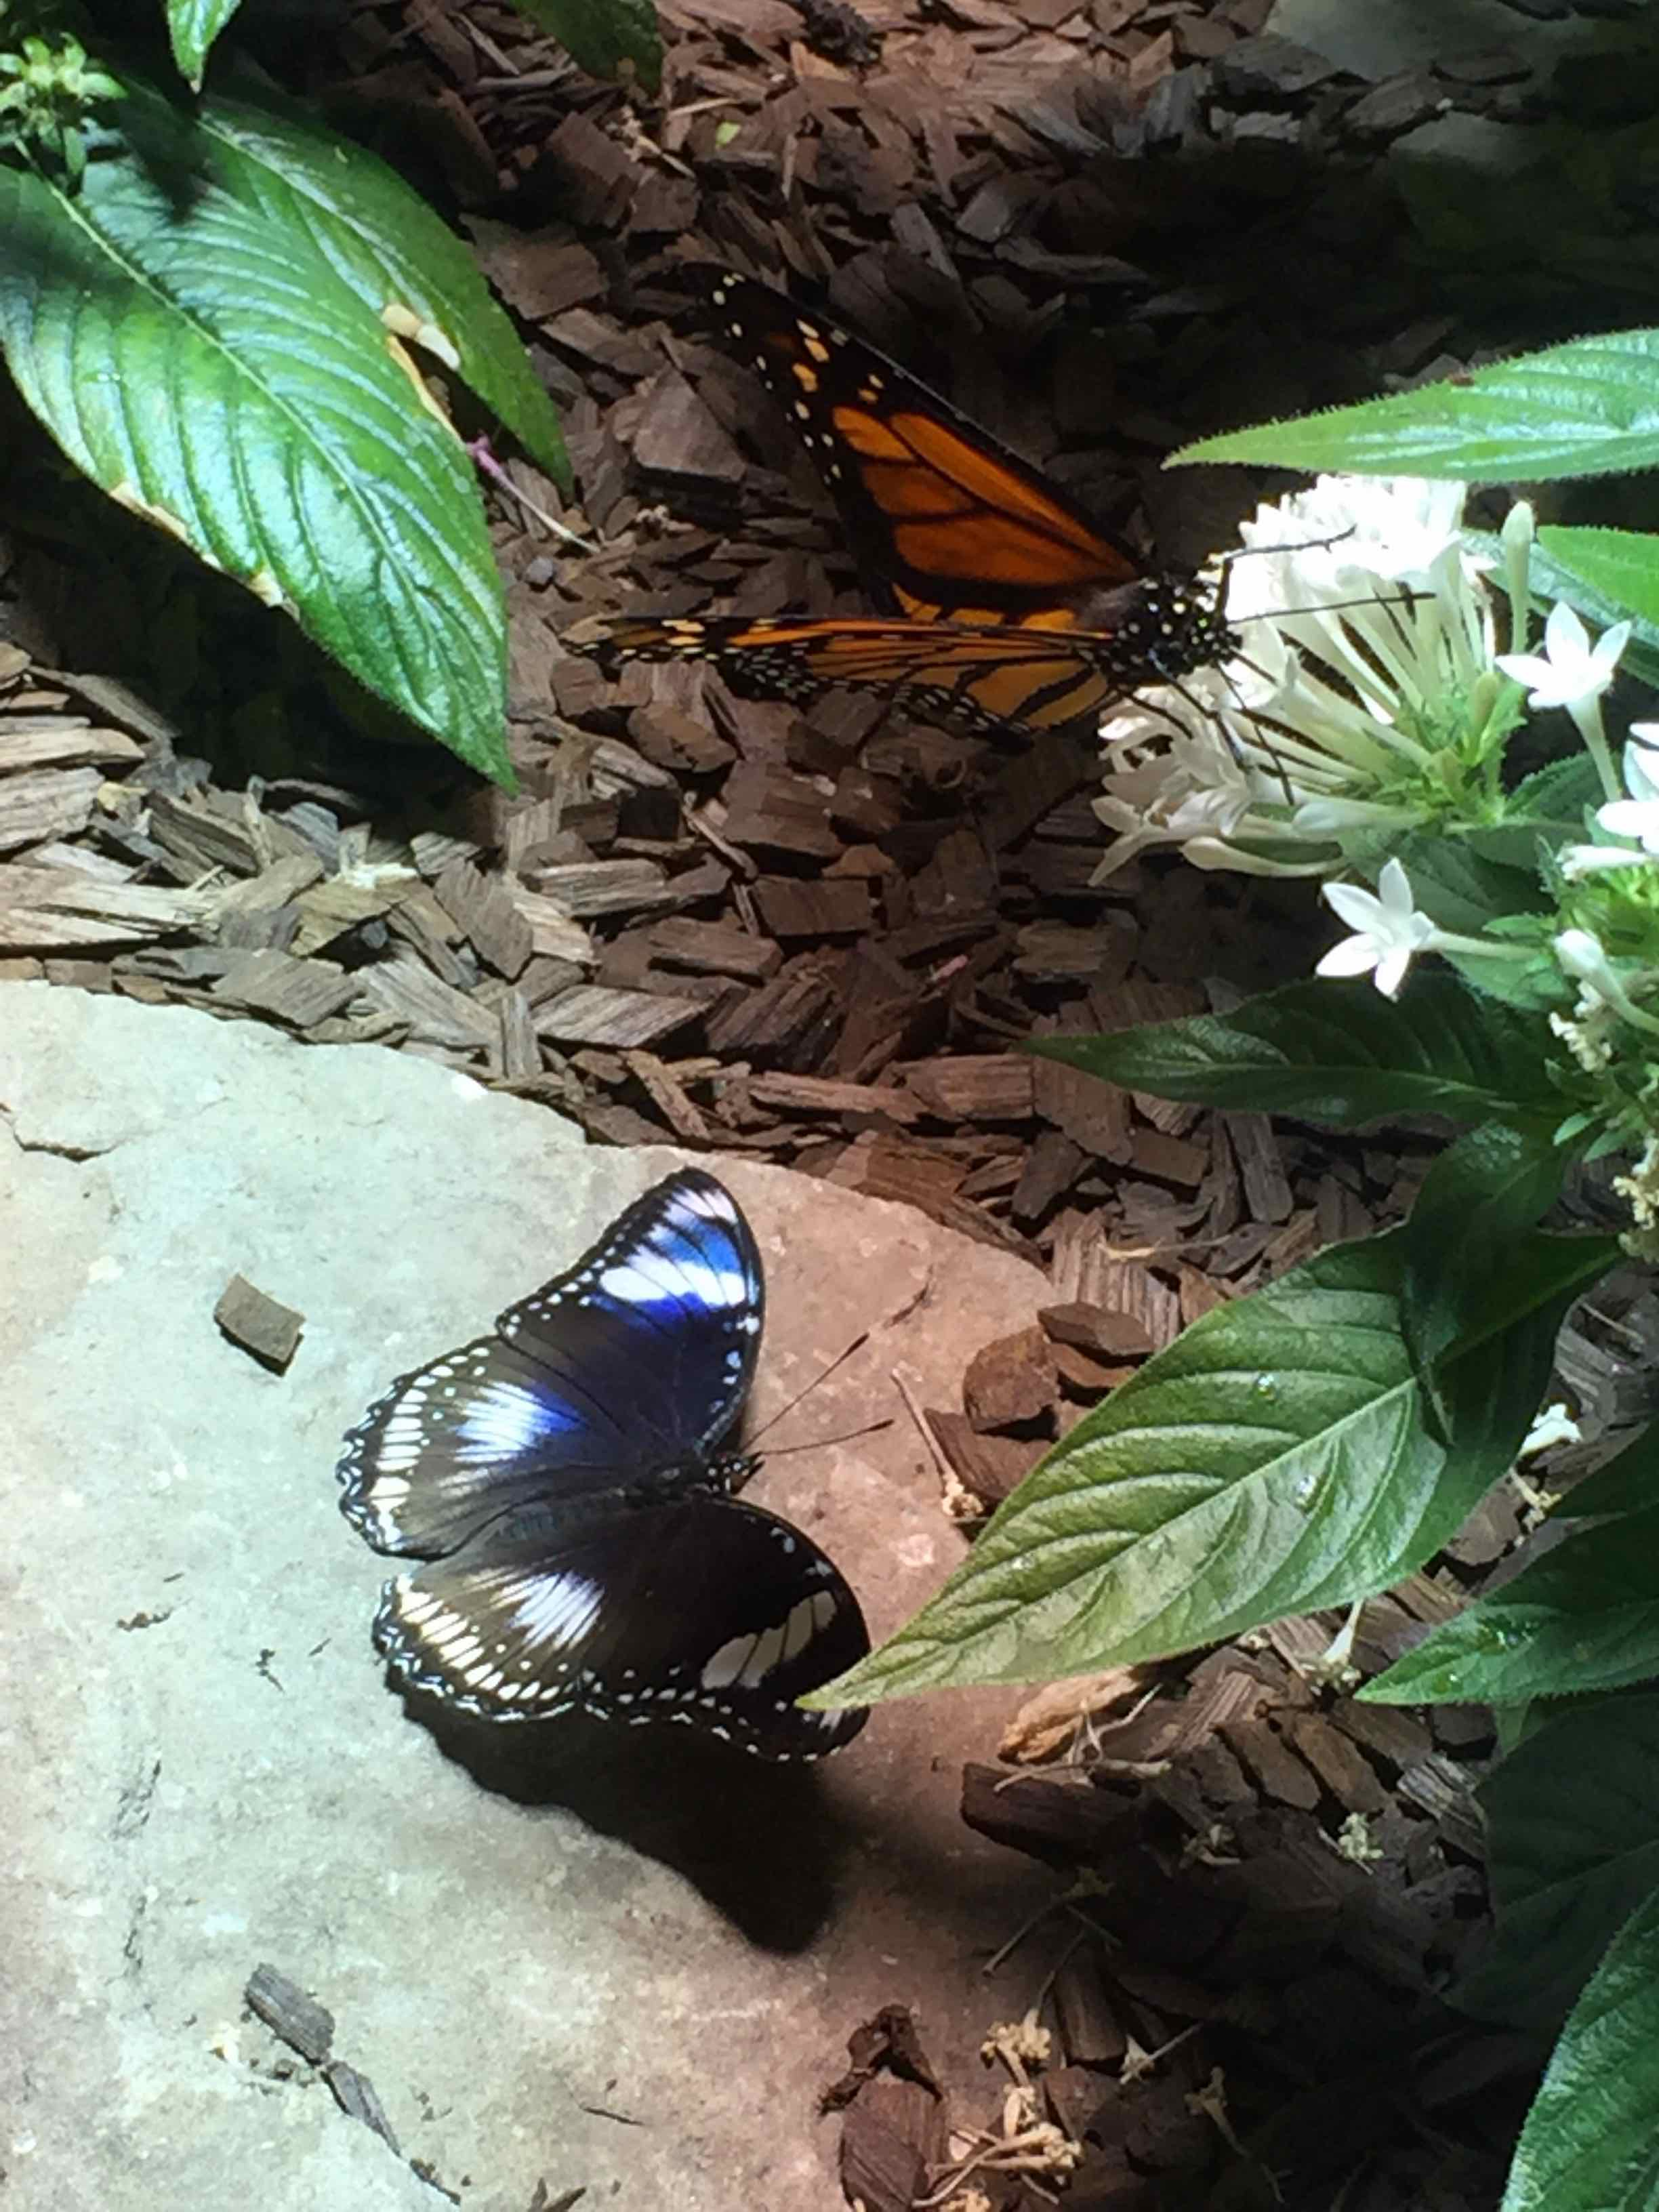 Butterflies at the Smithsonian Natural History museum